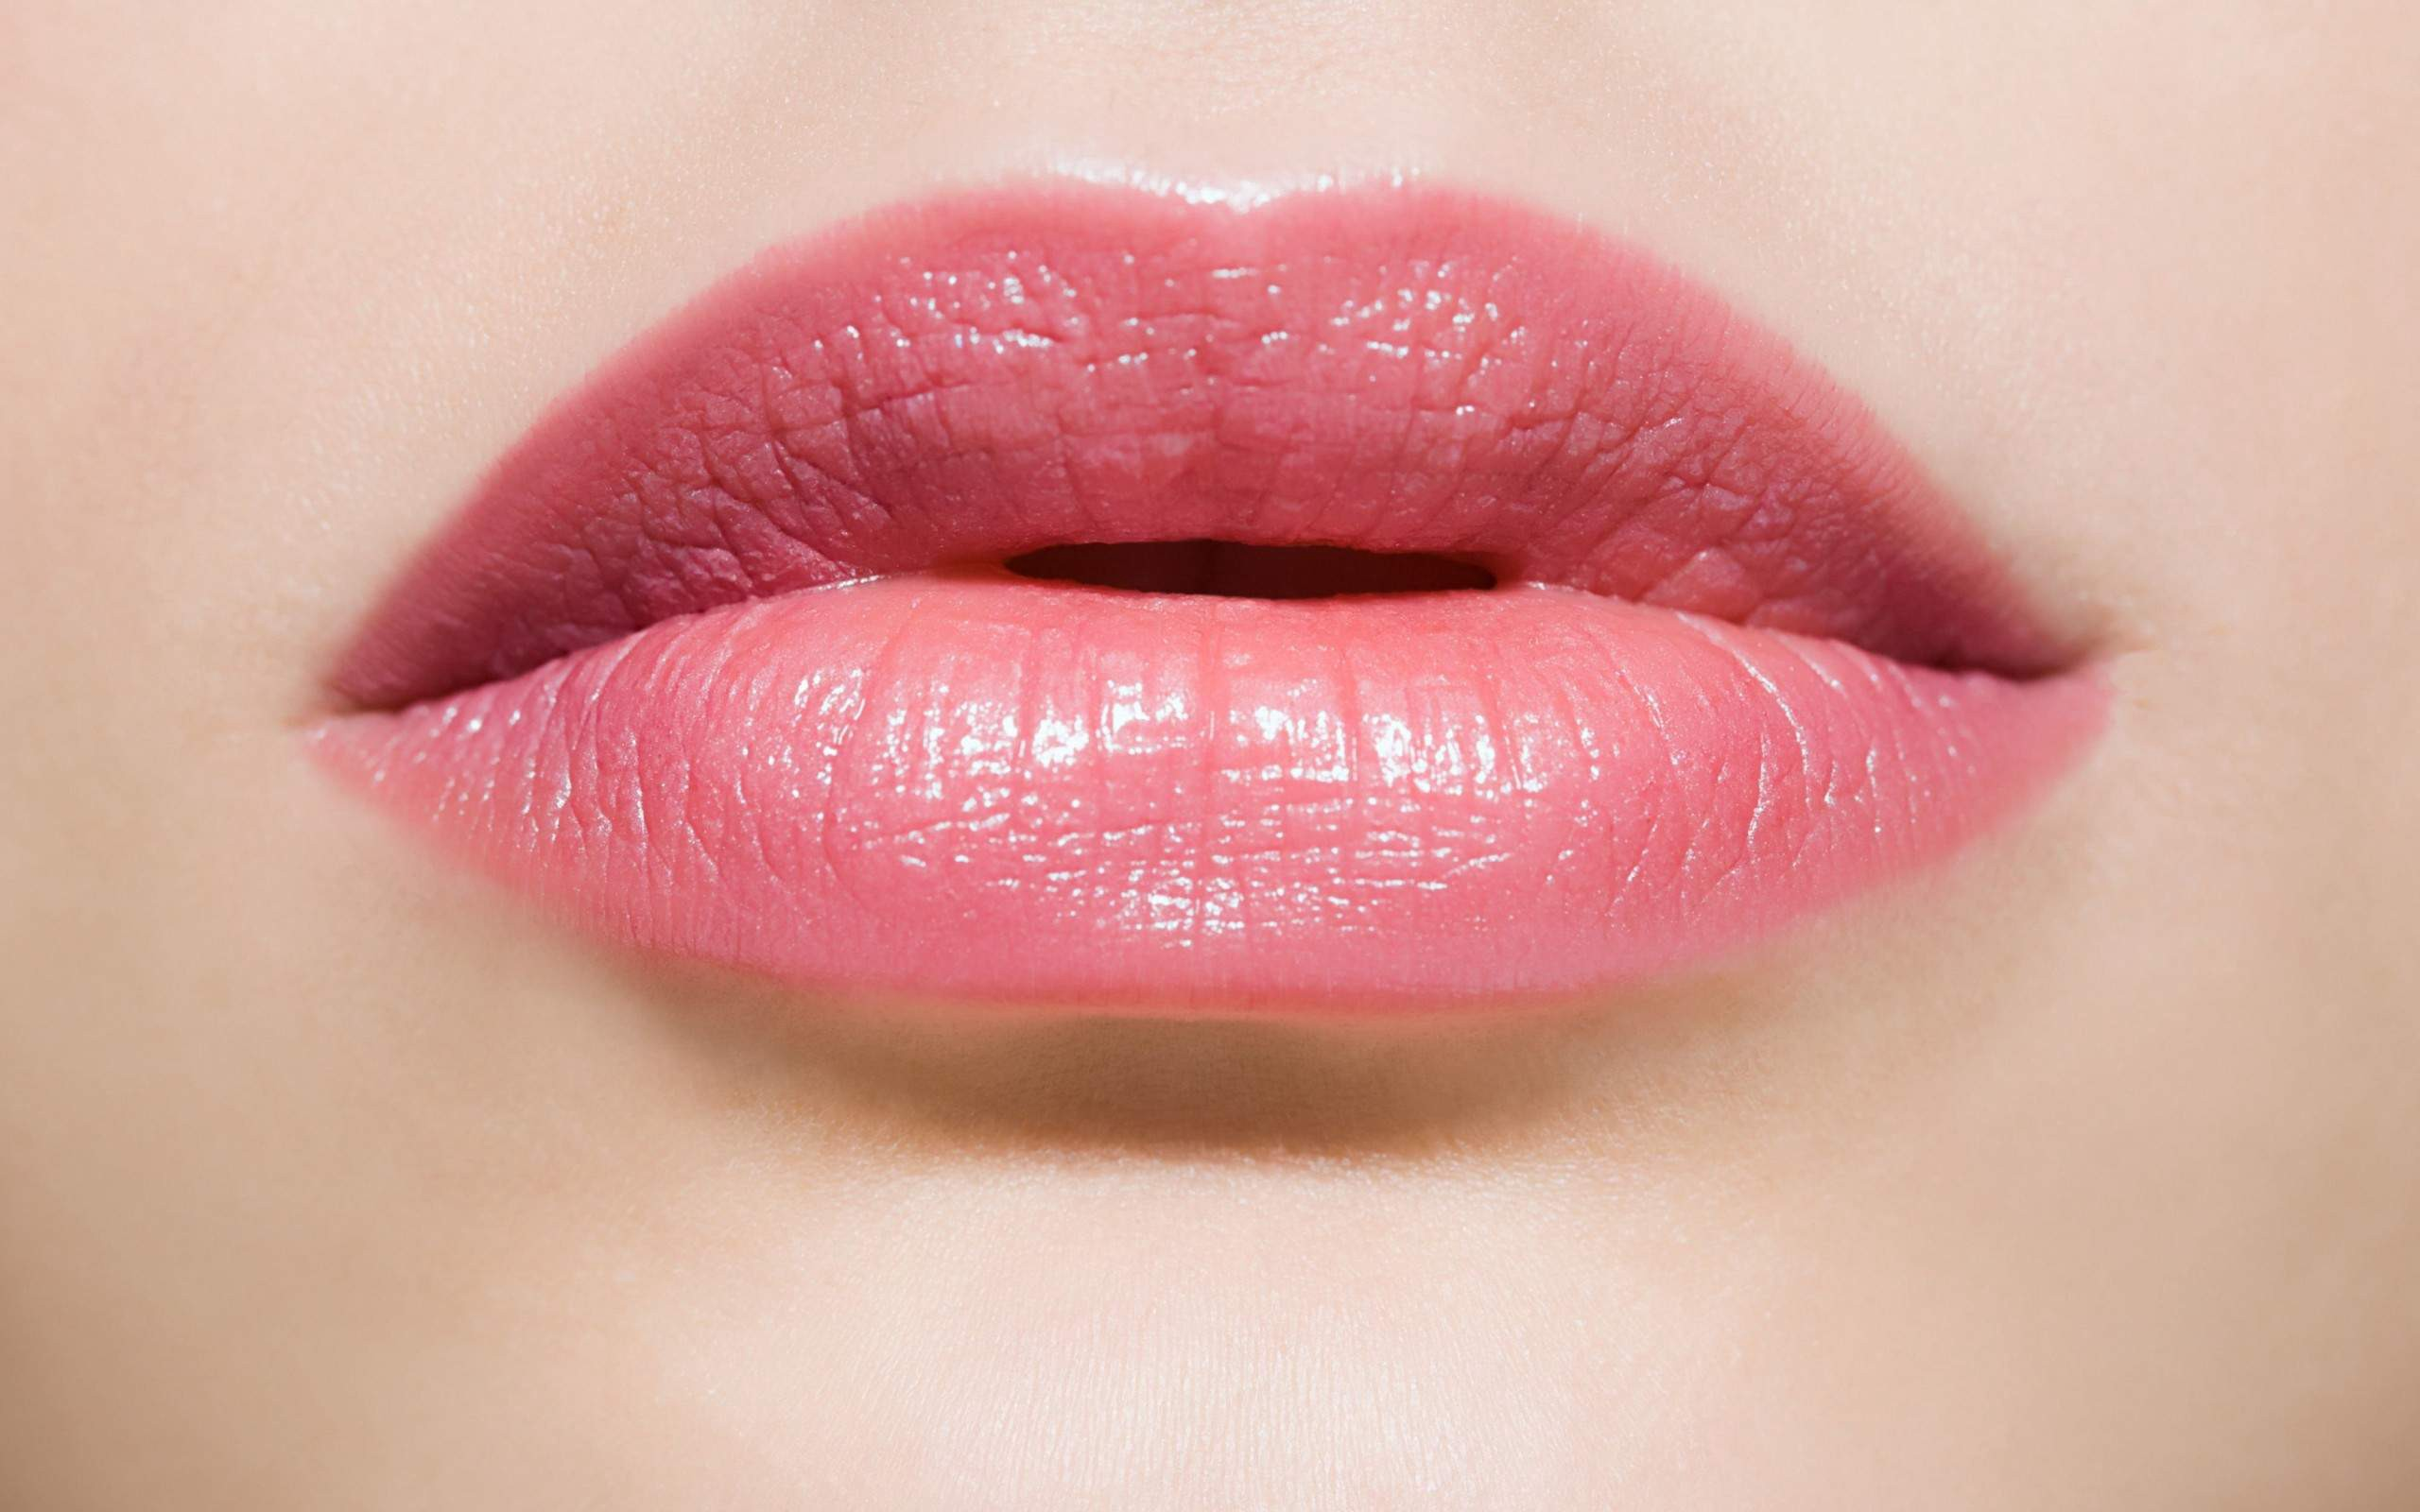 9 Ways To Make Your Lips Pink NATURALLY In 9 Weeks  by Dhrishni